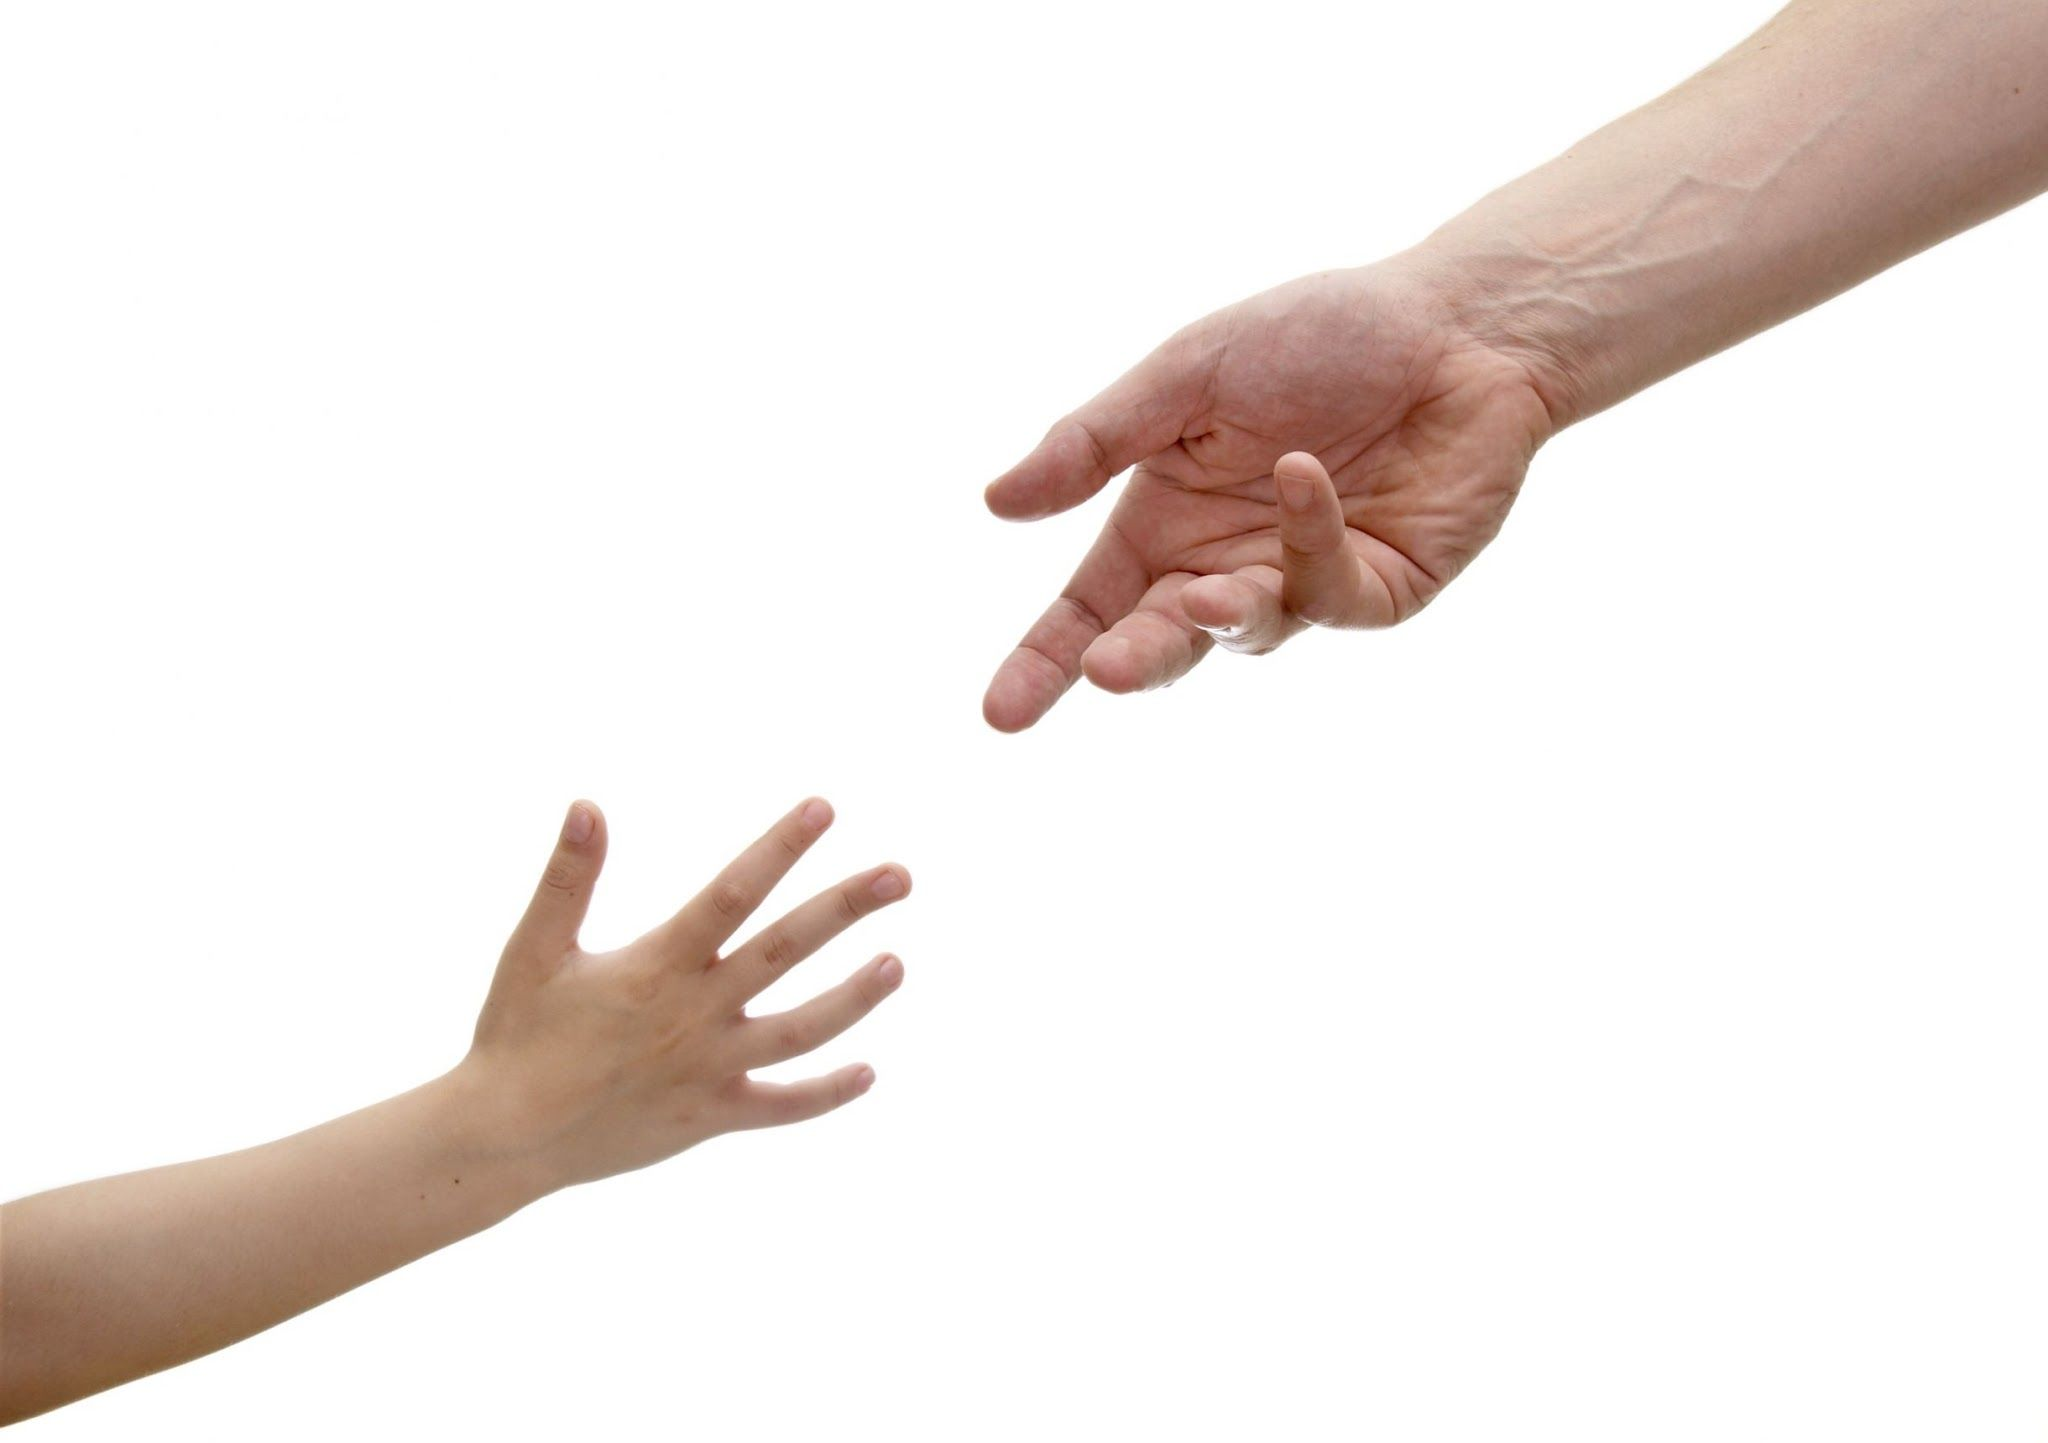 The Post Christian Generation How You Can Reach Them Hand Reference Hands Reaching Out Hand Reaching Out Drawing